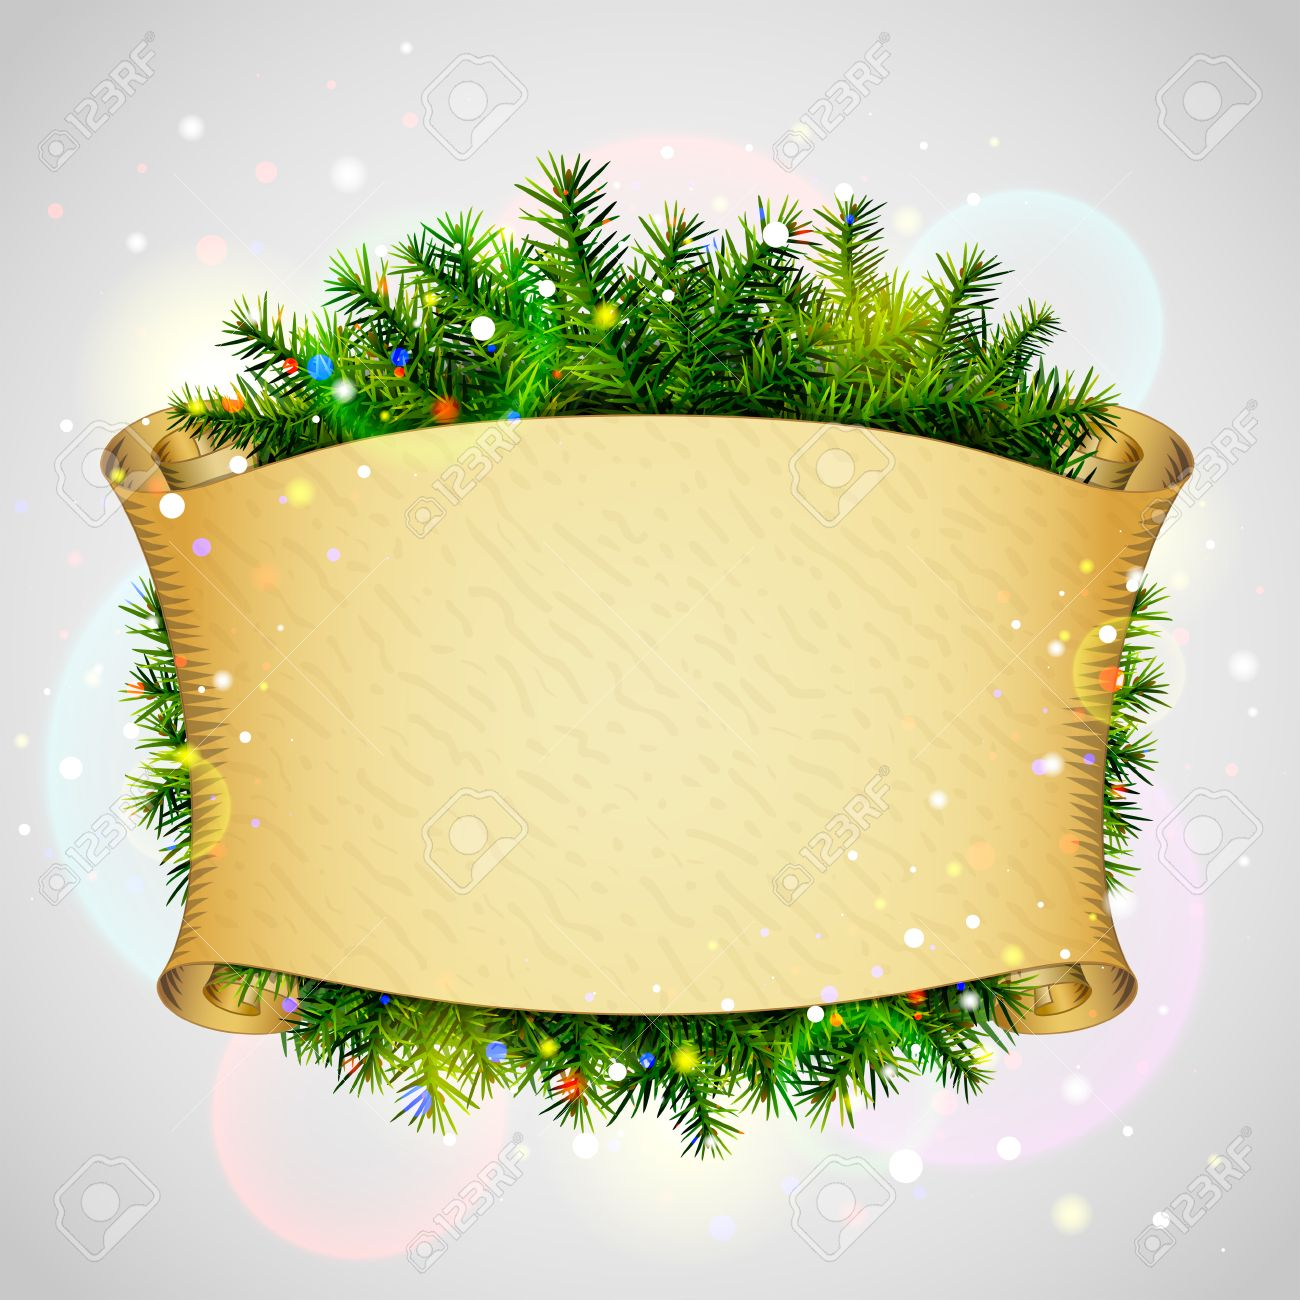 paper scroll for christmas list pine branches new year paper scroll for christmas list pine branches new year template blank parchment and